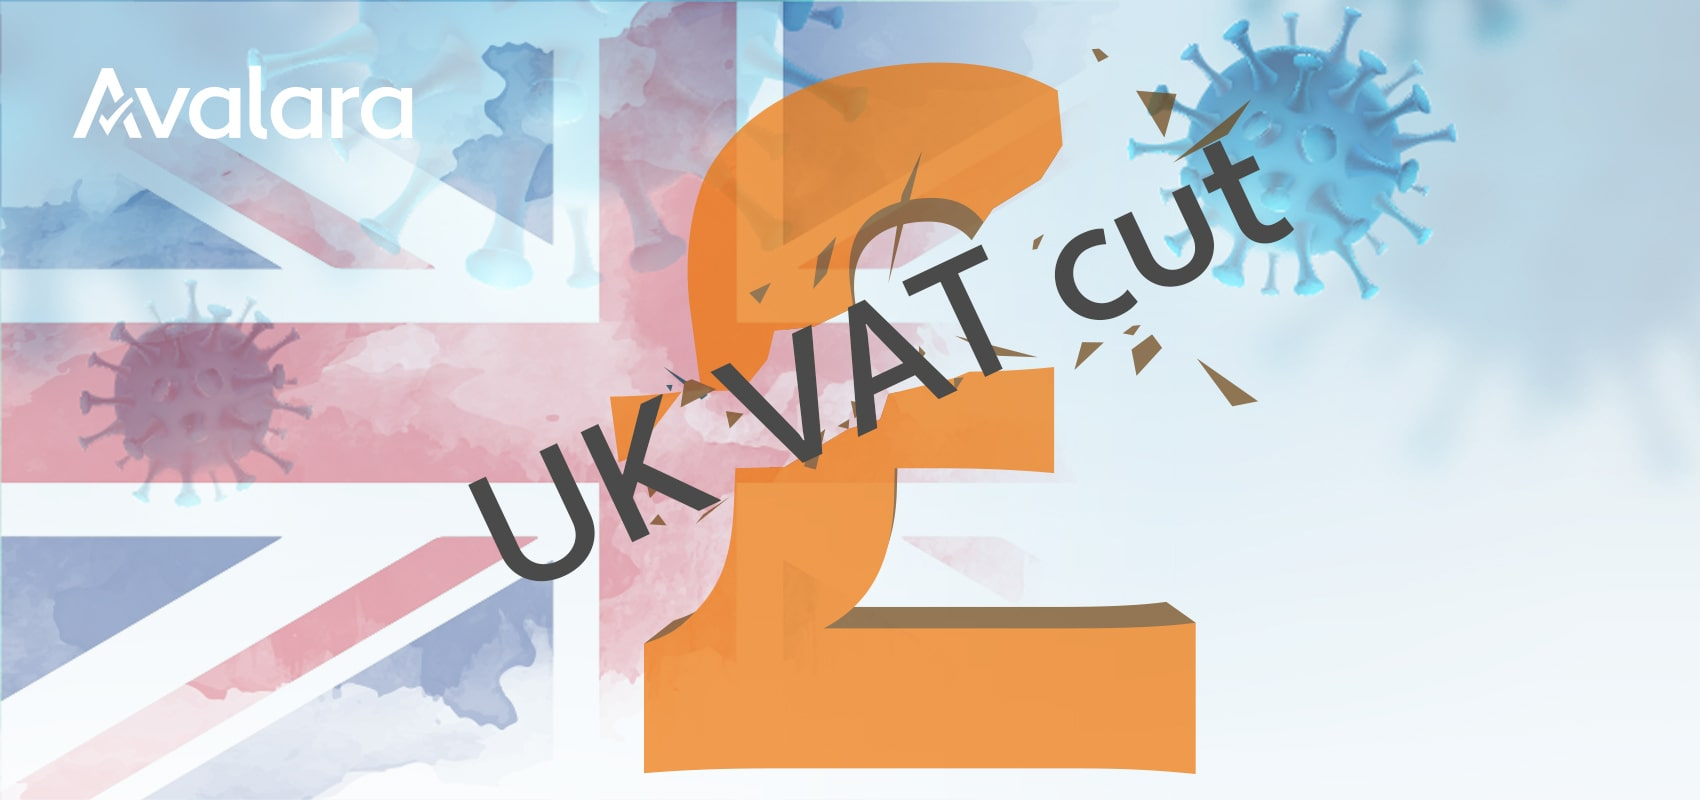 UK extends cut in hospitality and tourism VAT to 5% till  31 Mar 2021